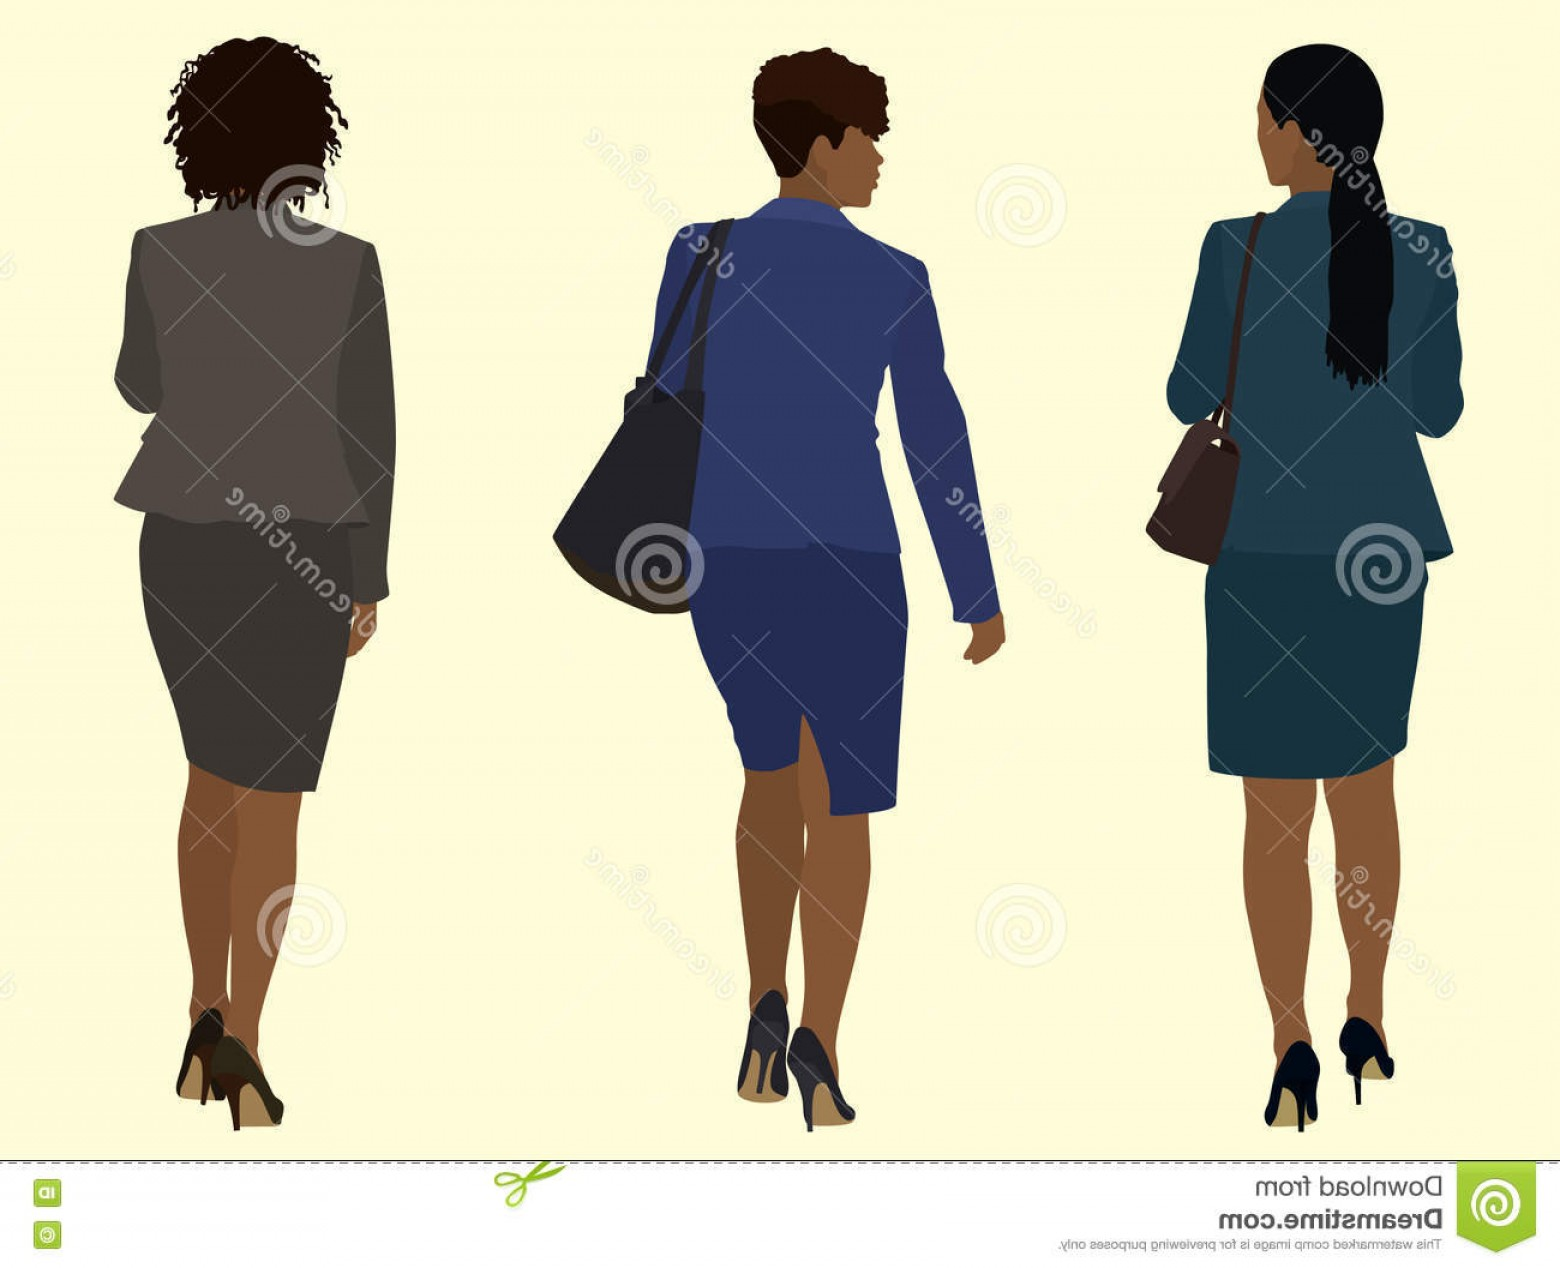 Walking Away Vector: Stock Illustration Black Business Women Walking Away African American Wearing Suits Carrying Purses Image